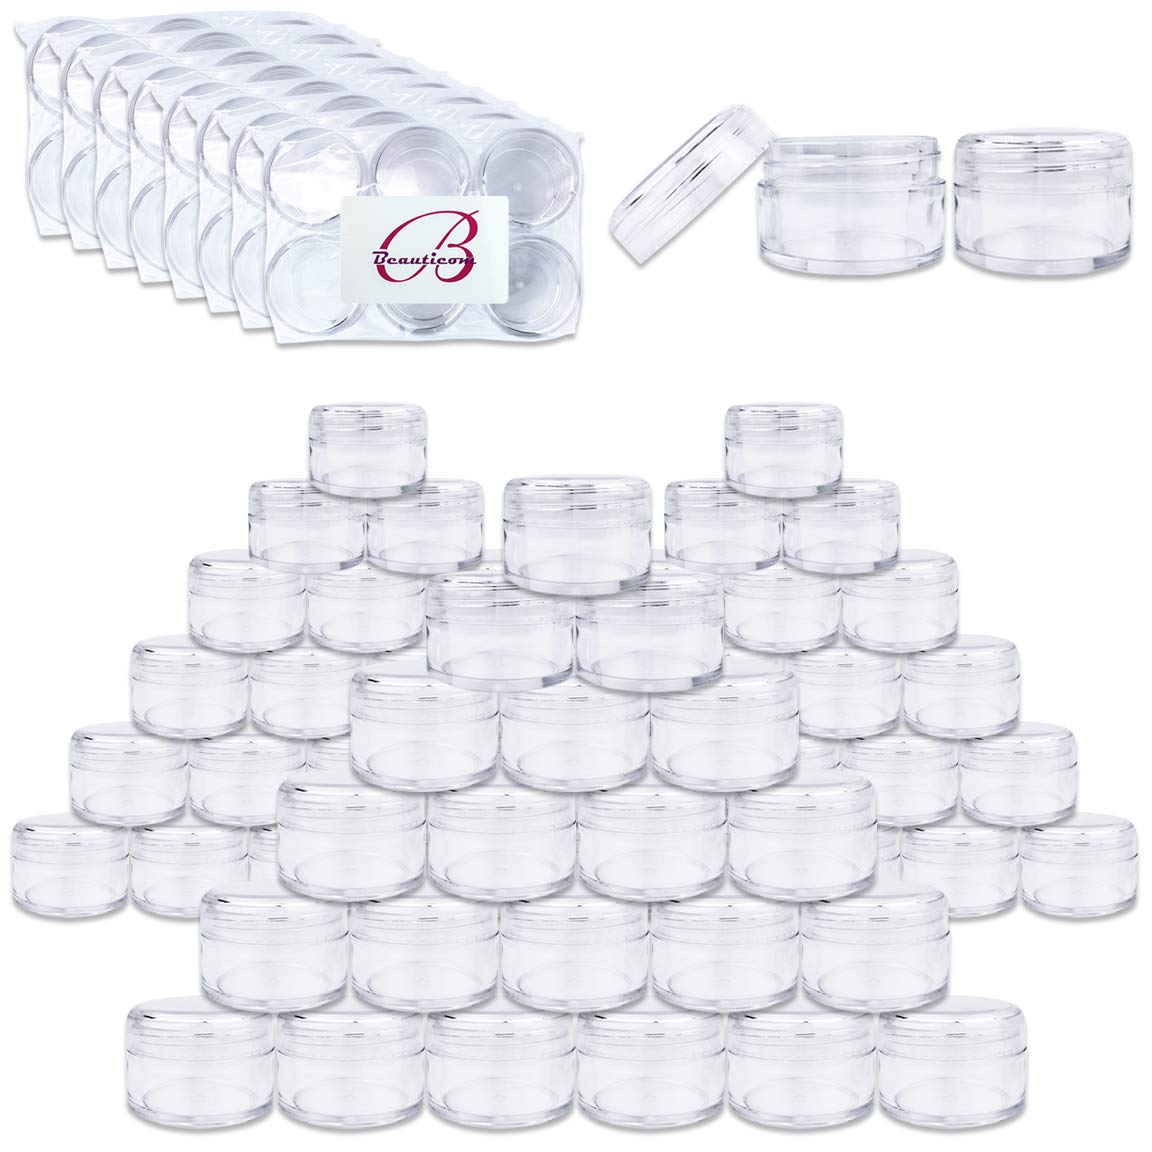 Beauticom 150 Pieces 20G/20ML Round Clear Jars with Screw Cap Lid for Pills, Medication, Ointments and Other Beauty and Health Aids - BPA Free